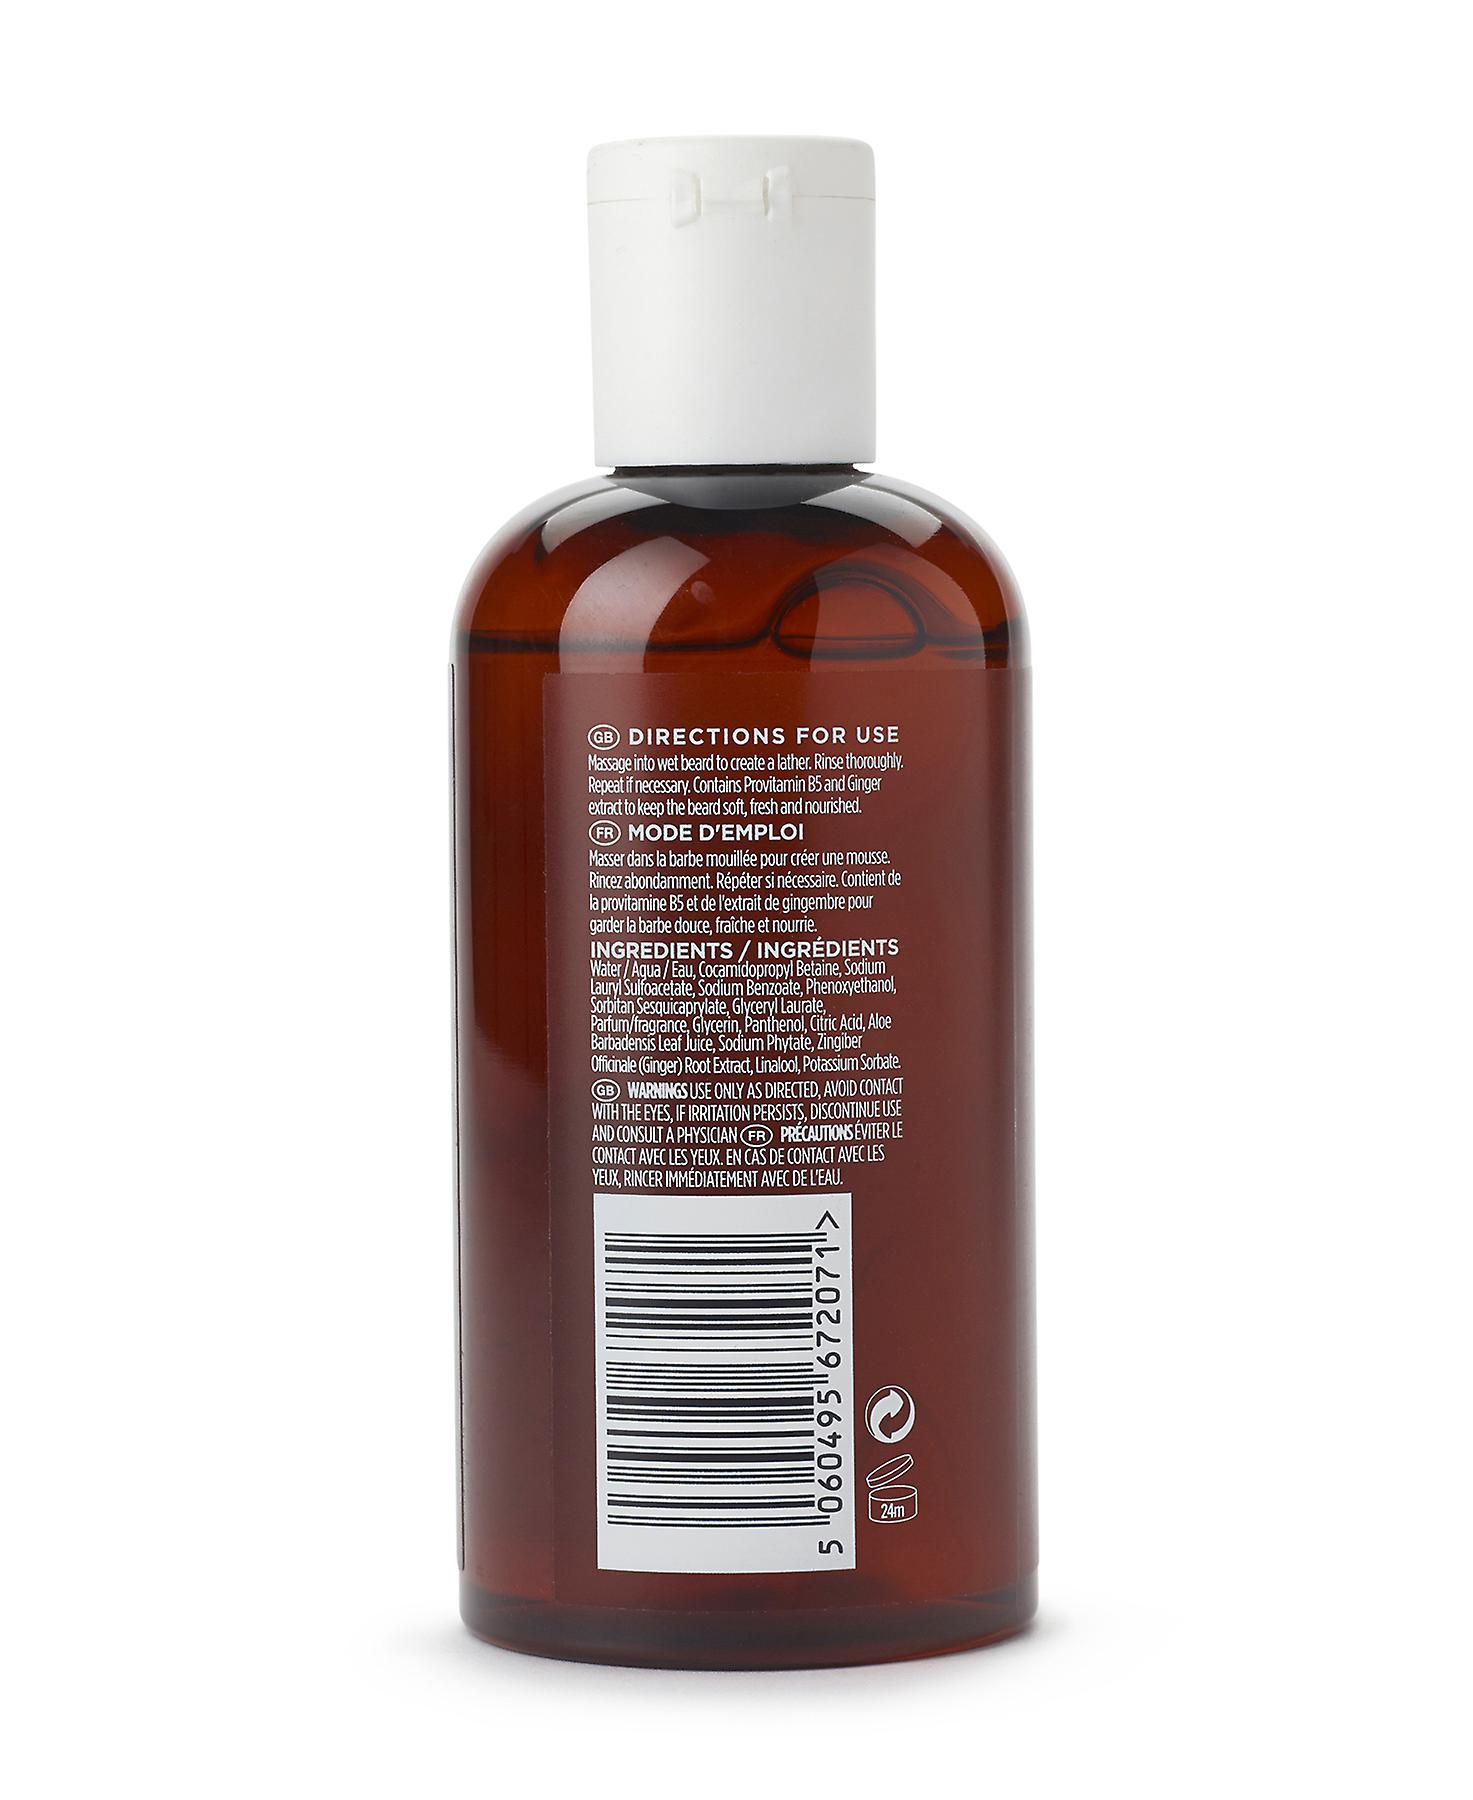 Hawkins & Brimble Beard Shampoo (250ml)